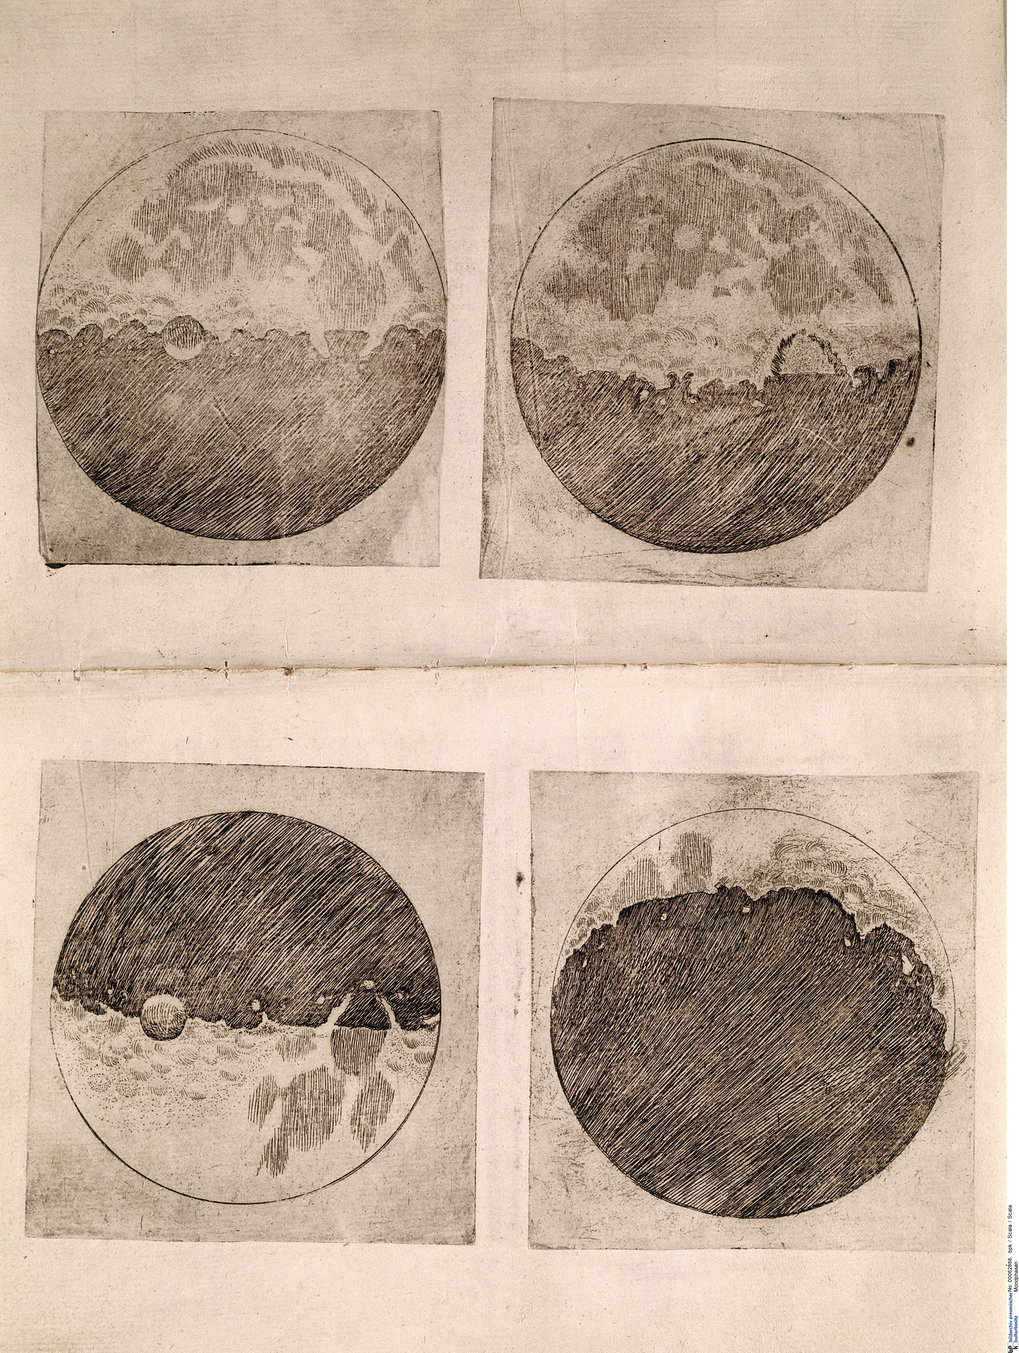 The renaissance man from pisa max planck gesellschaft an eye on the earths satellite galileos work sidereus nuncius 1610 also includes many drawings of the moon in different phases gumiabroncs Images